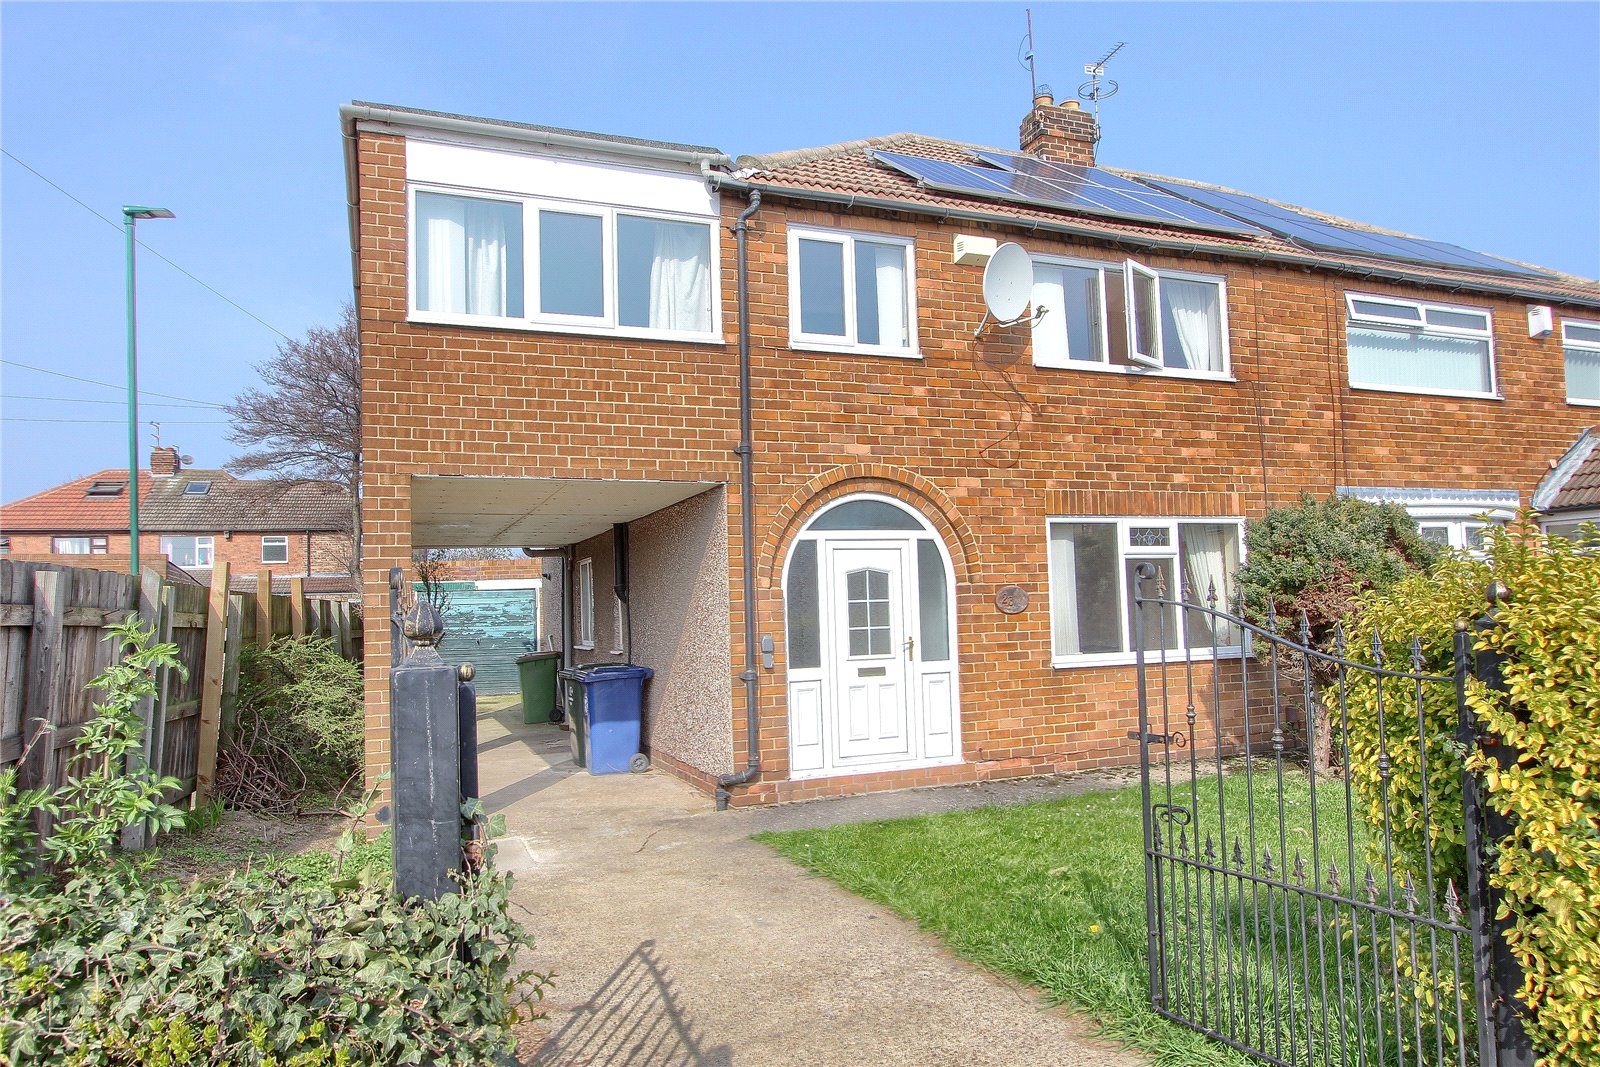 4 bed house for sale in Trent Road, Redcar  - Property Image 1